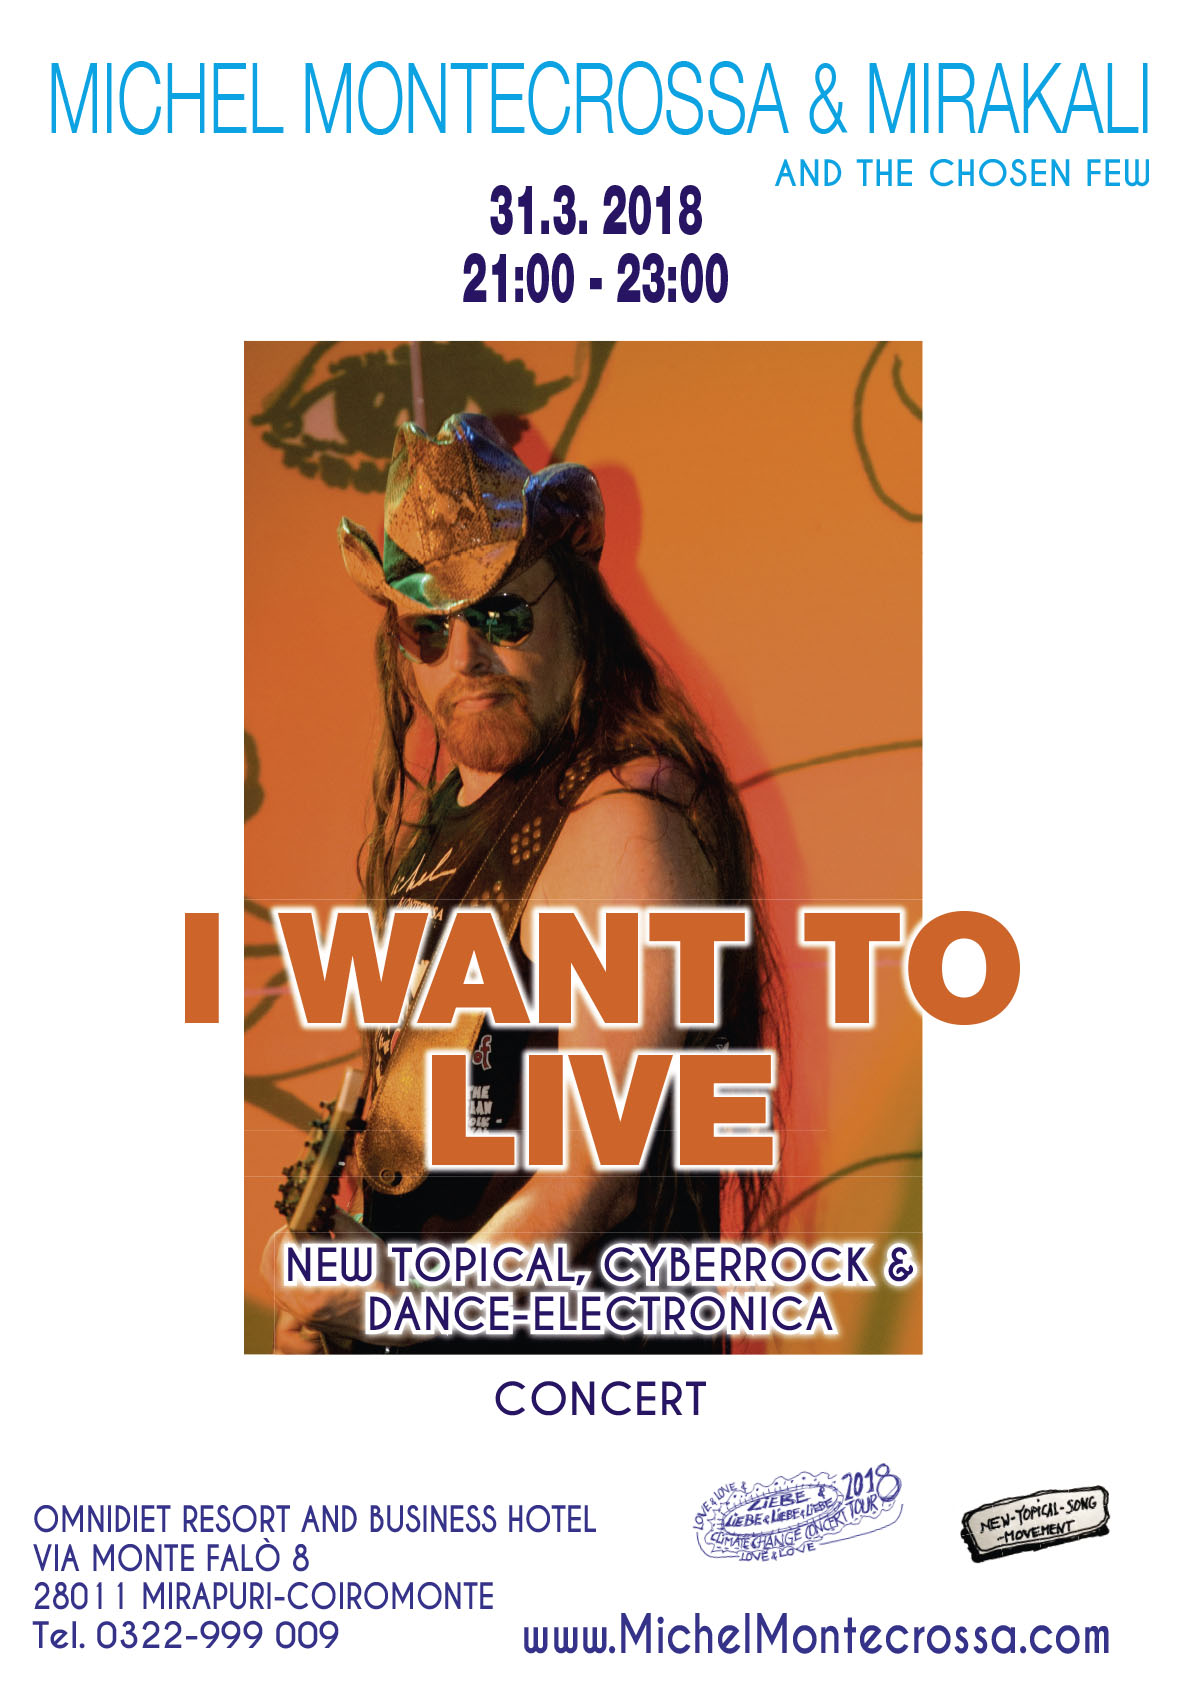 'I Want To Live' New-Topical, Cyberrock & Dance-Electronica Concert with Michel Montecrossa & Mirakali and The Chosen Few